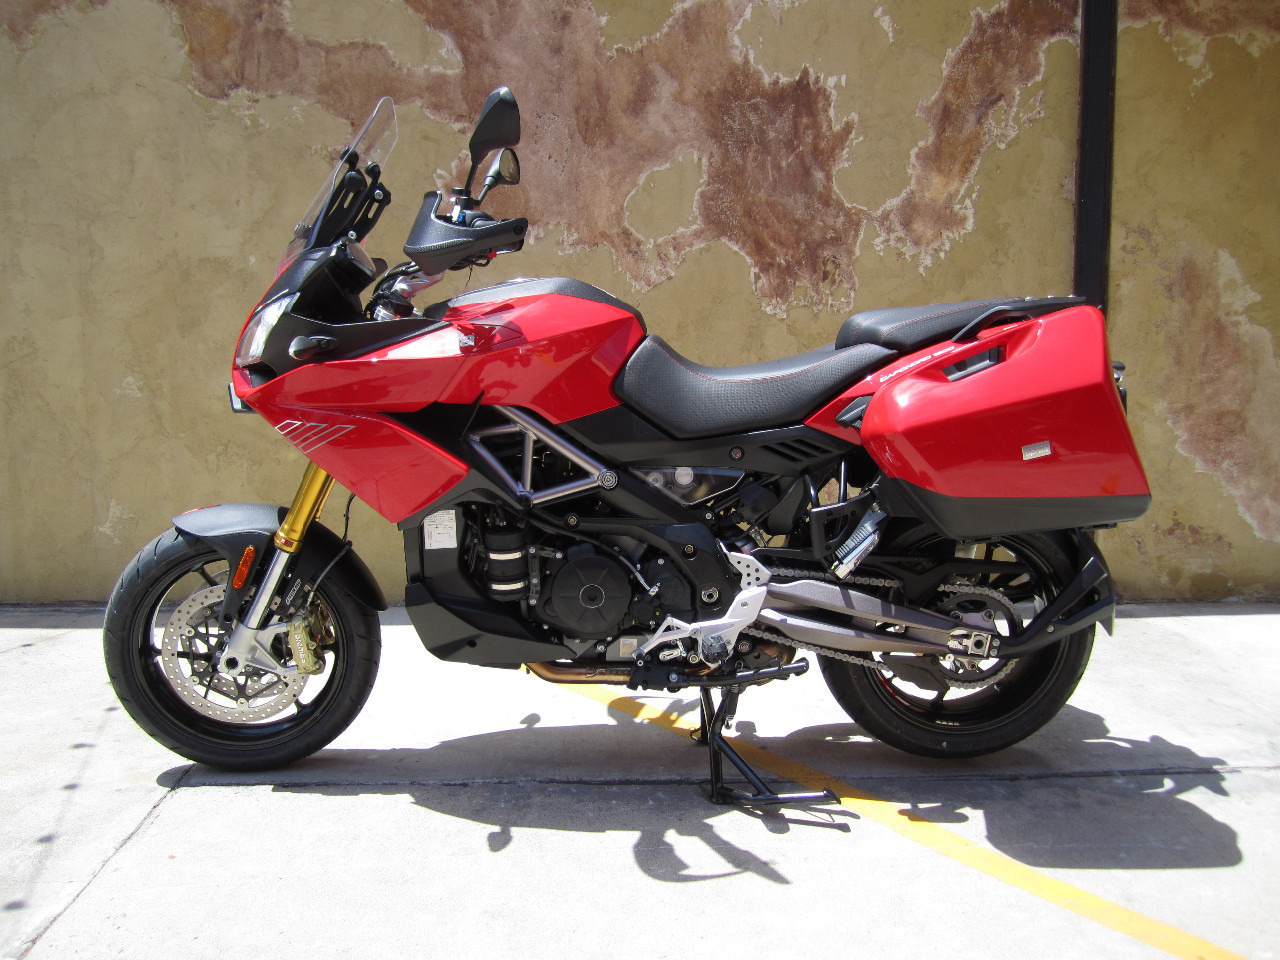 Aprilia Caponord 1200 ABS Travel Pack pics #8309